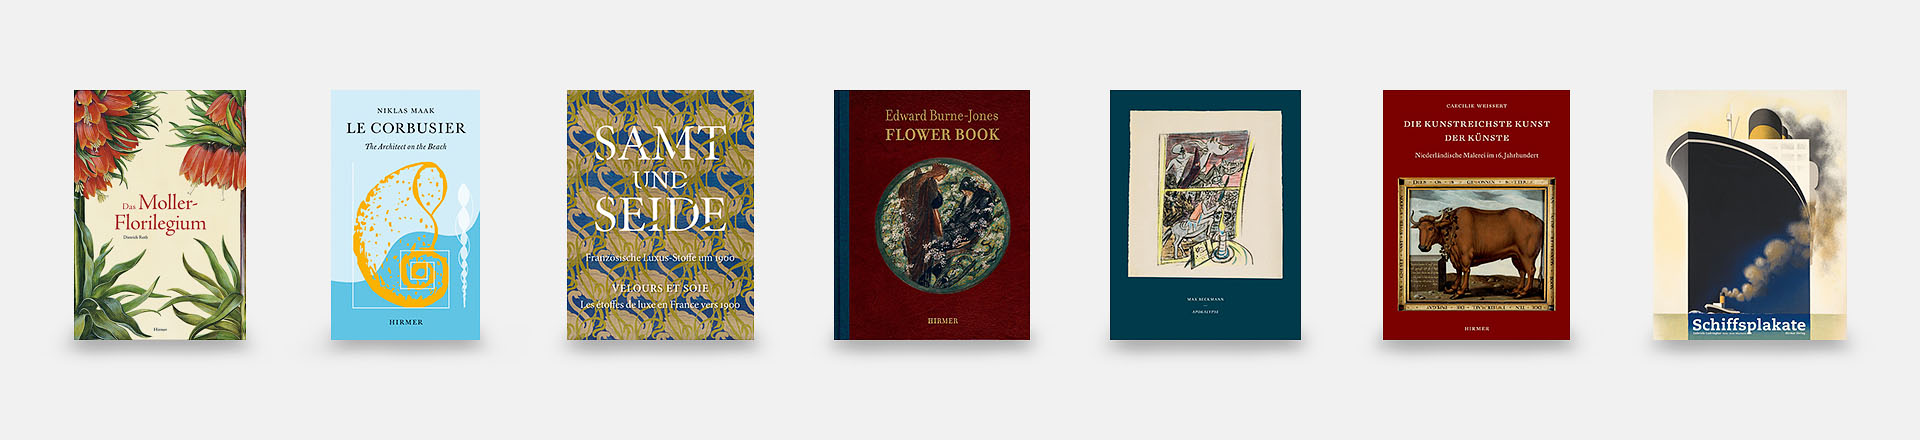 Gunnar Musan - Coverbeispiele: Das Moller-Florilegium, Le Corbusier - The Architect on the Beach, Samt und Seide, Edward Burne-Jones - Flower Book, Beckmann - Apokalypse, Die kunstreichste Kunst der Künste, Schiffsplakate